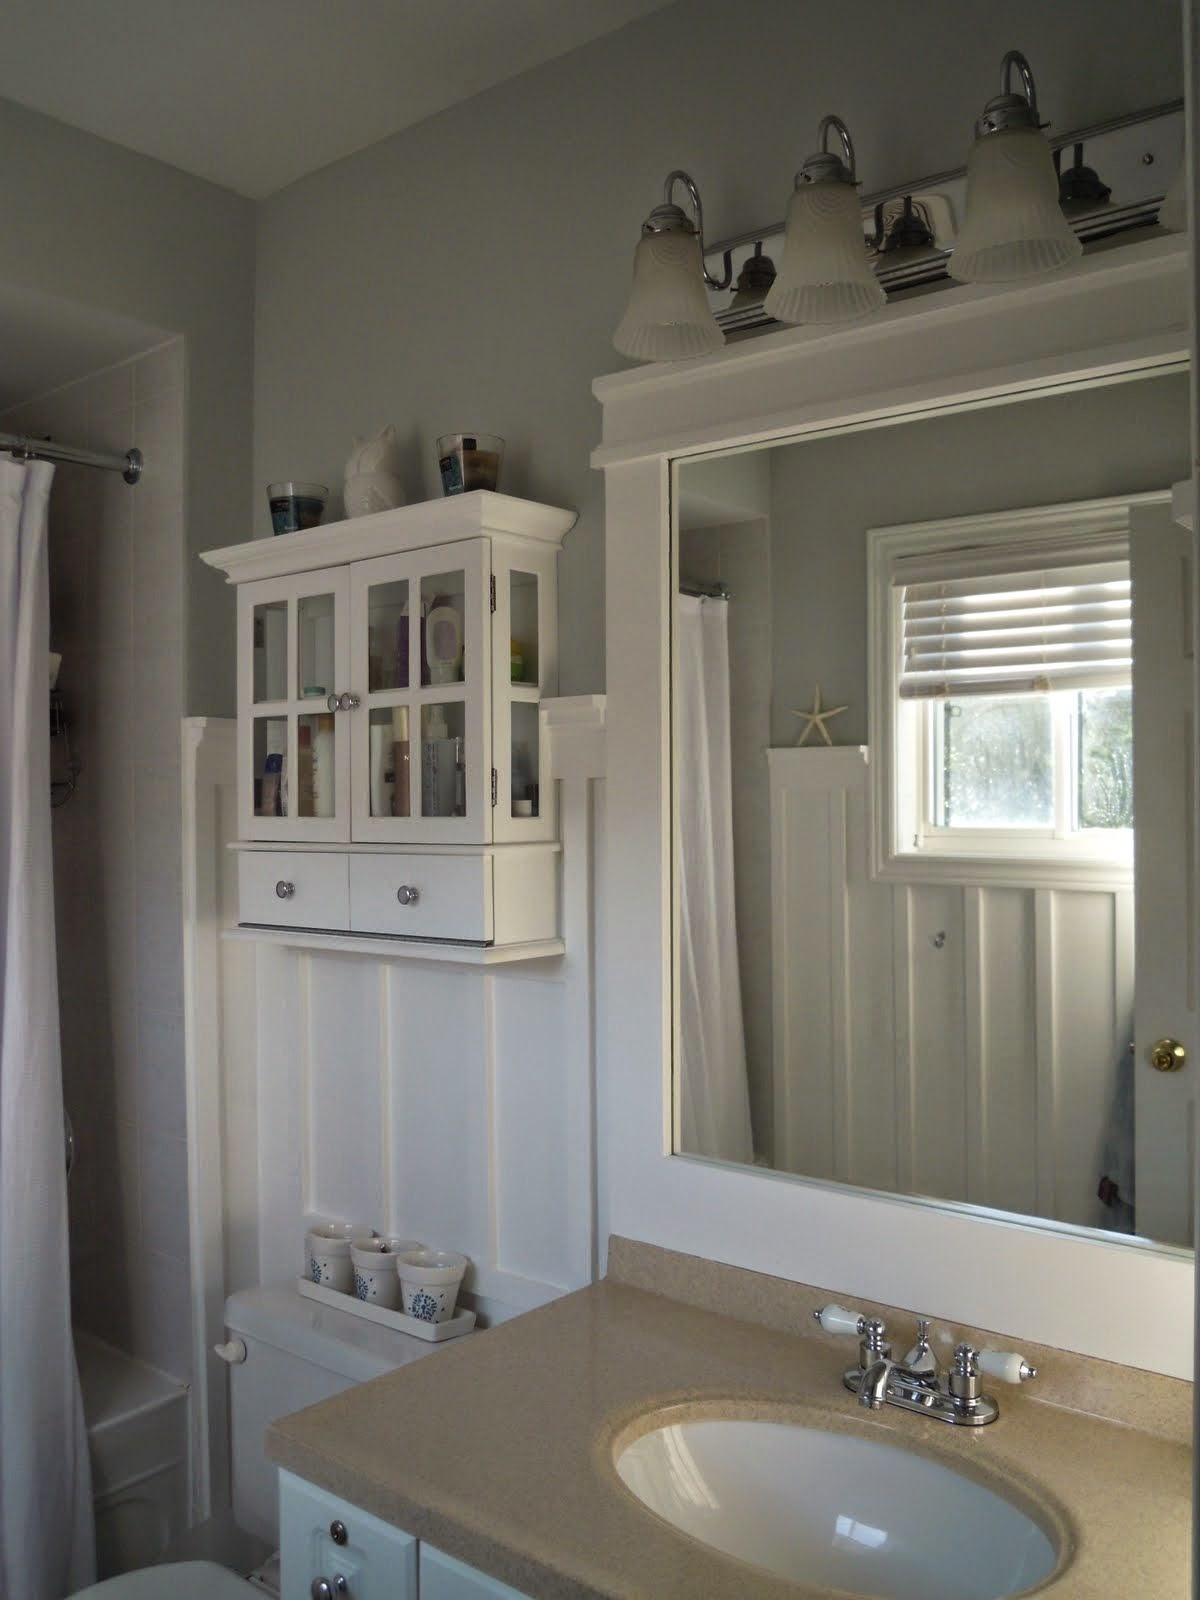 One More Little Bathroom With The Board And Batten All Crisp Trim Around Mirror I Addeda Bit Of White Paint Go A Long